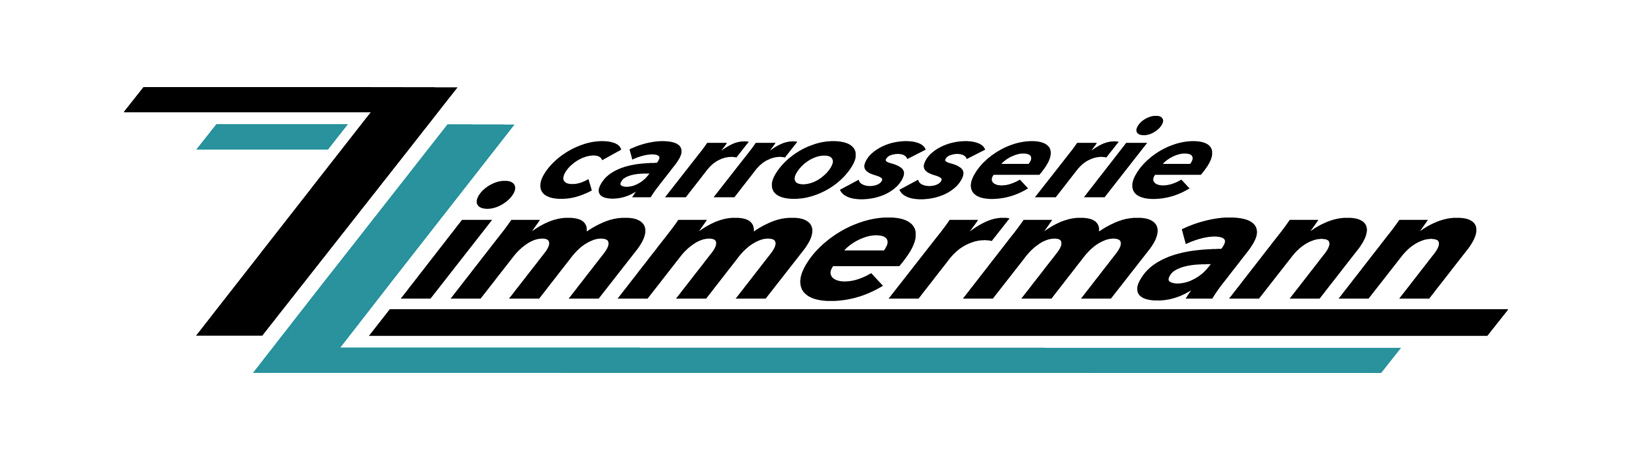 Carrosserie Zimmermann